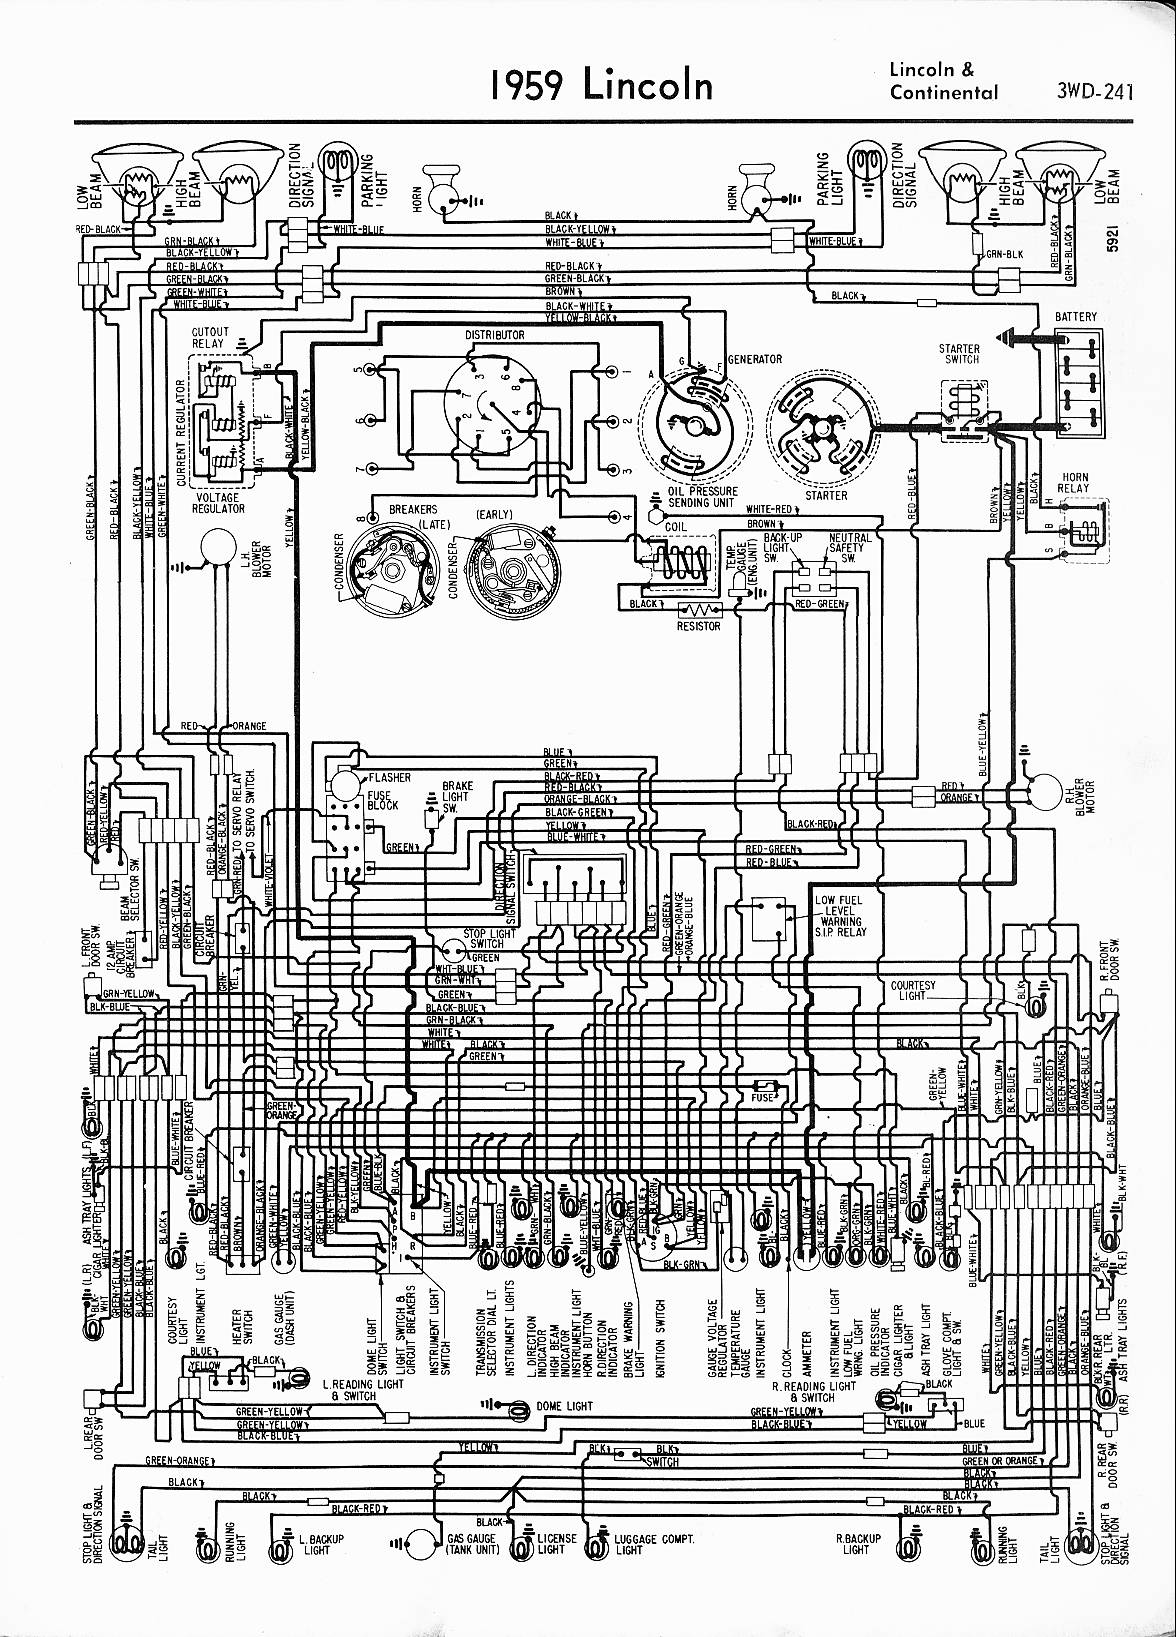 1969 Fairlane Fuse Block Diagram Quick Start Guide Of Wiring Home Box 1957 Lincoln Diagrams 1965 Electrical